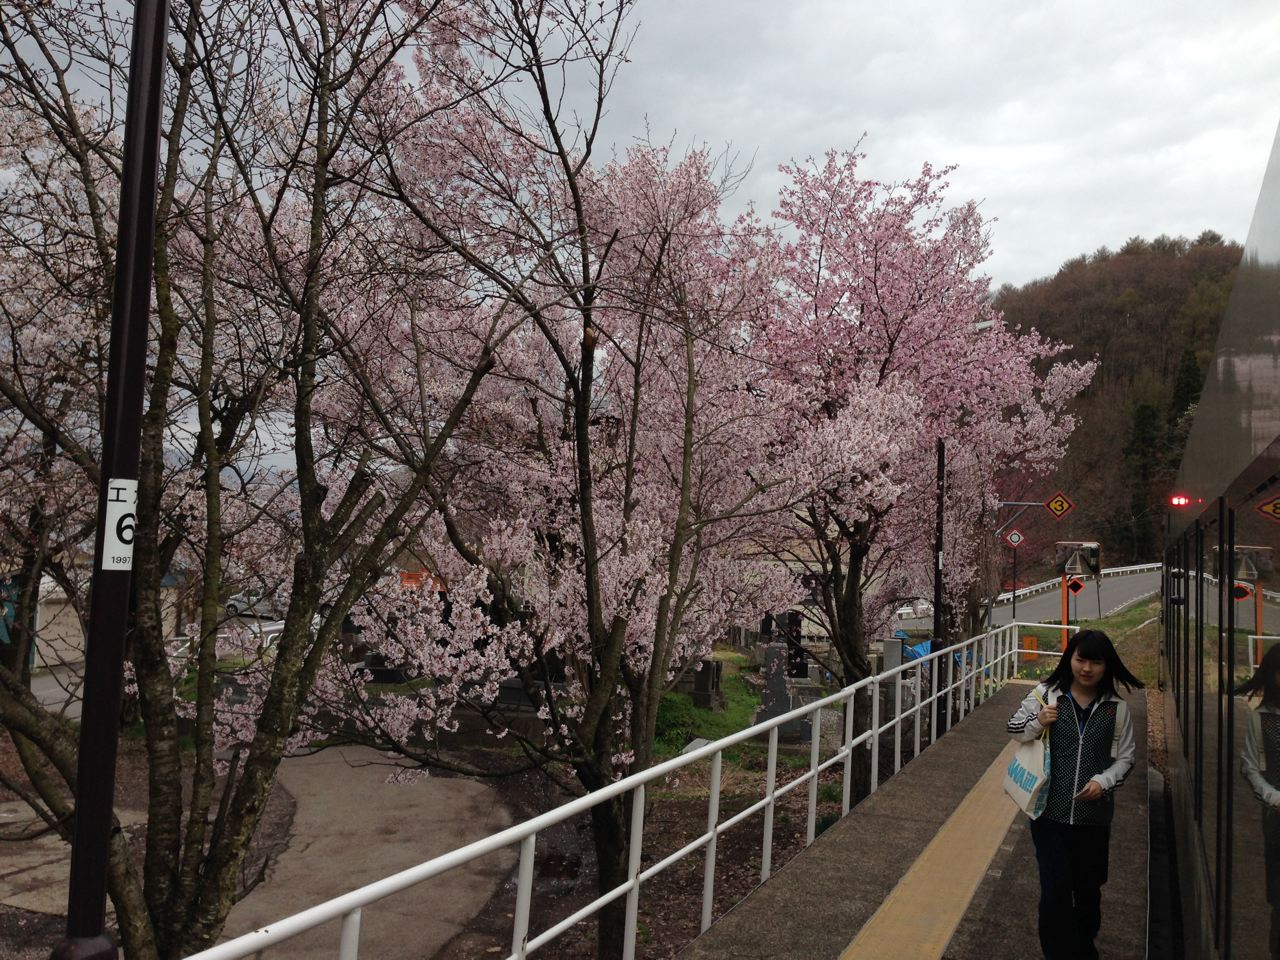 Cruising thru the country side of Iiyama on the local train opens up lots of magic views of the Cherry Blossoms